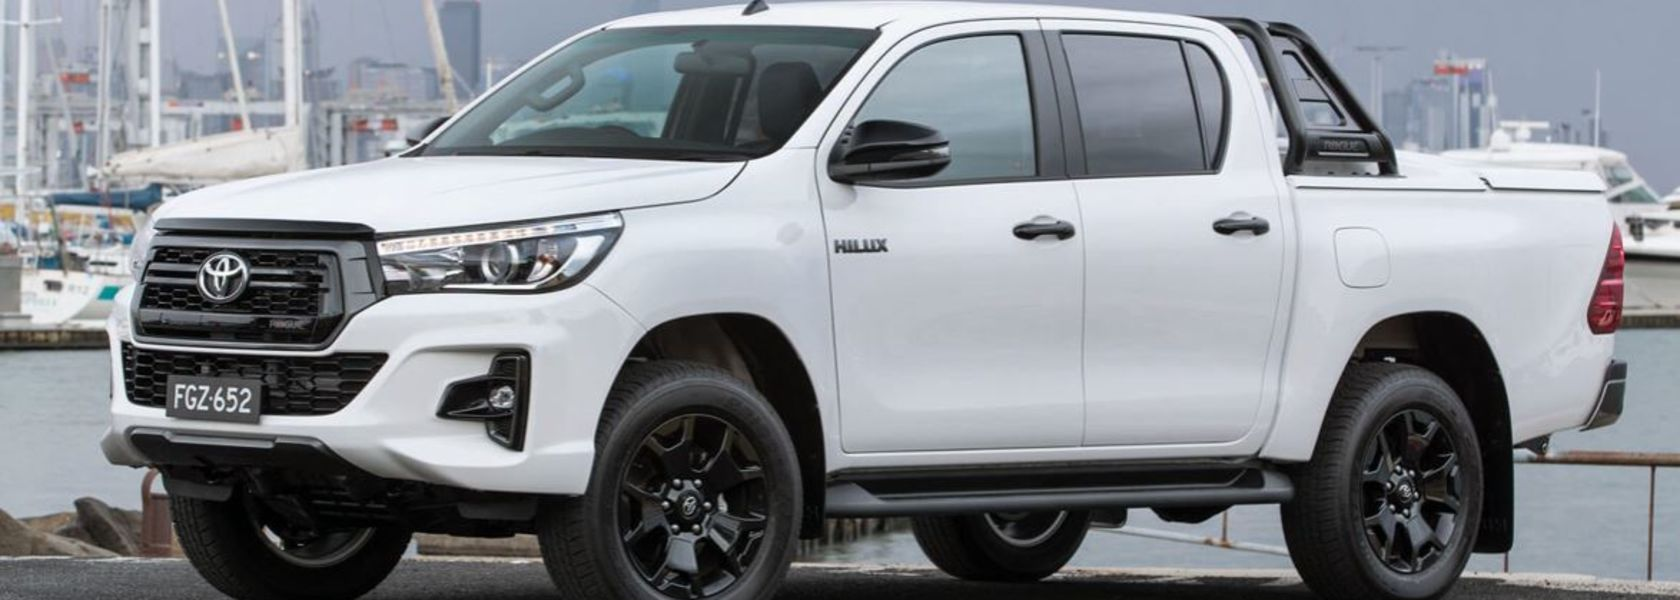 Hilux is Australia's favourite for January